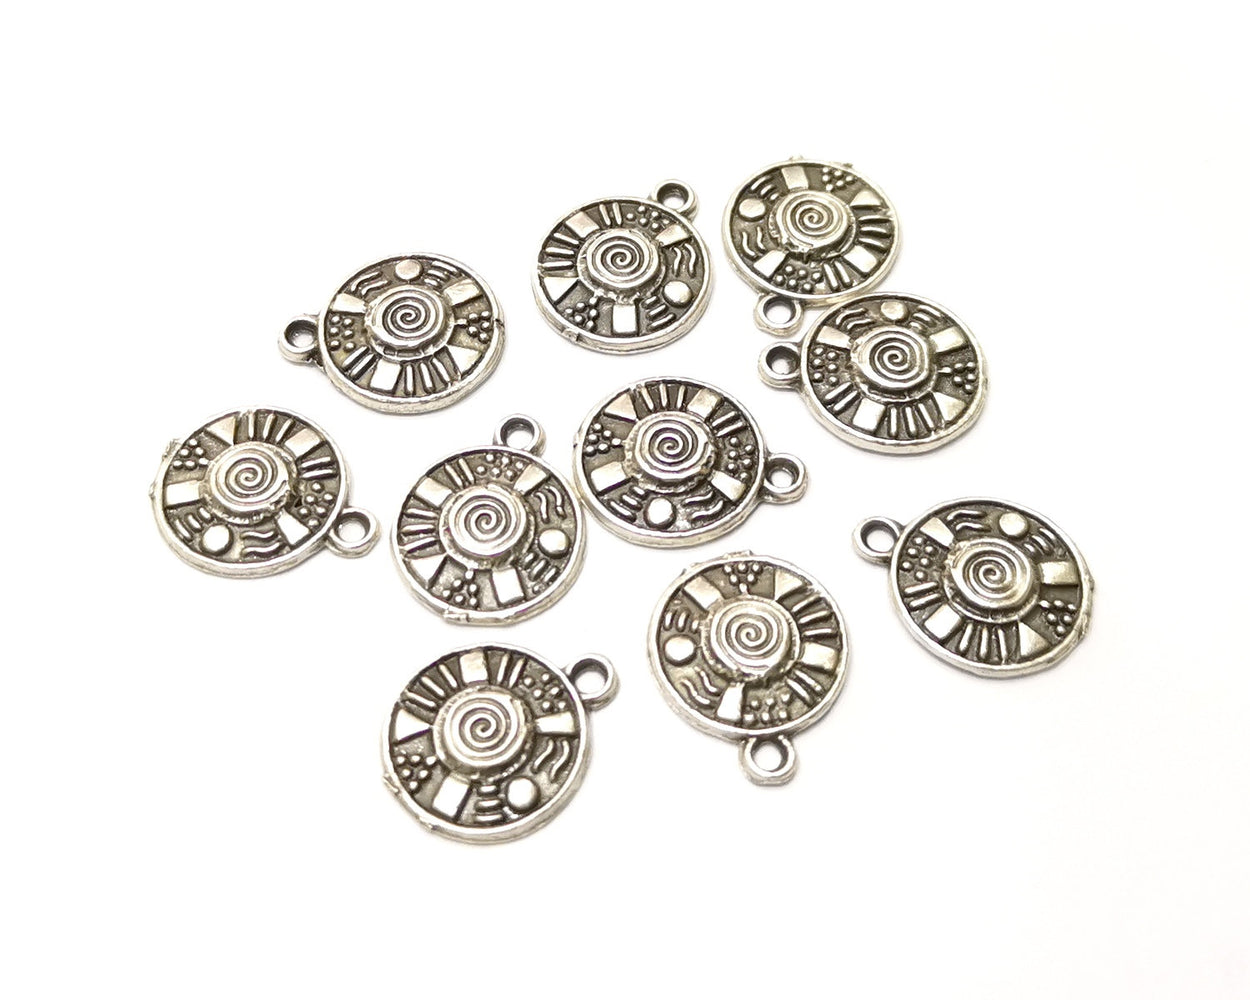 10 Silver Charms Antique Silver Plated Charms (16x14mm)  G17475